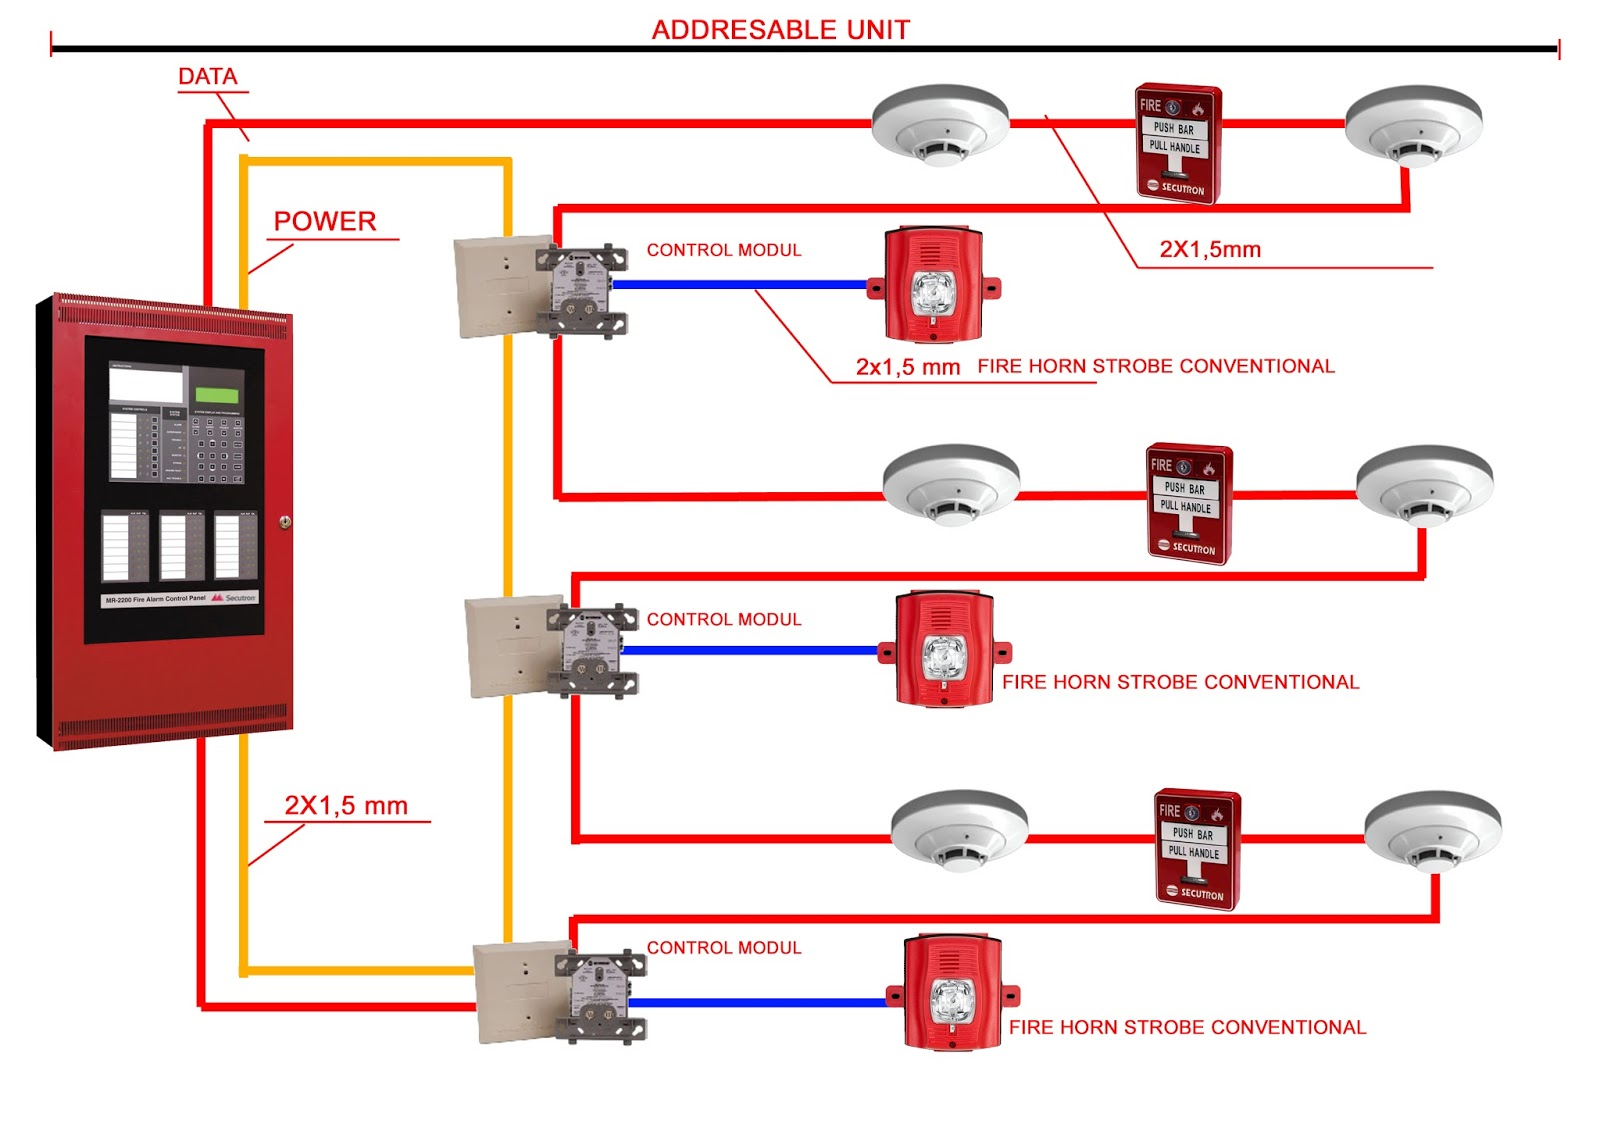 Fire Alarm Horn Strobe Wiring Diagram likewise Watch additionally FireAlarm together with 71878 furthermore 2001 Mitsubishi Montero Sport Alarm Wiring Diagram. on simplex fire alarm wiring